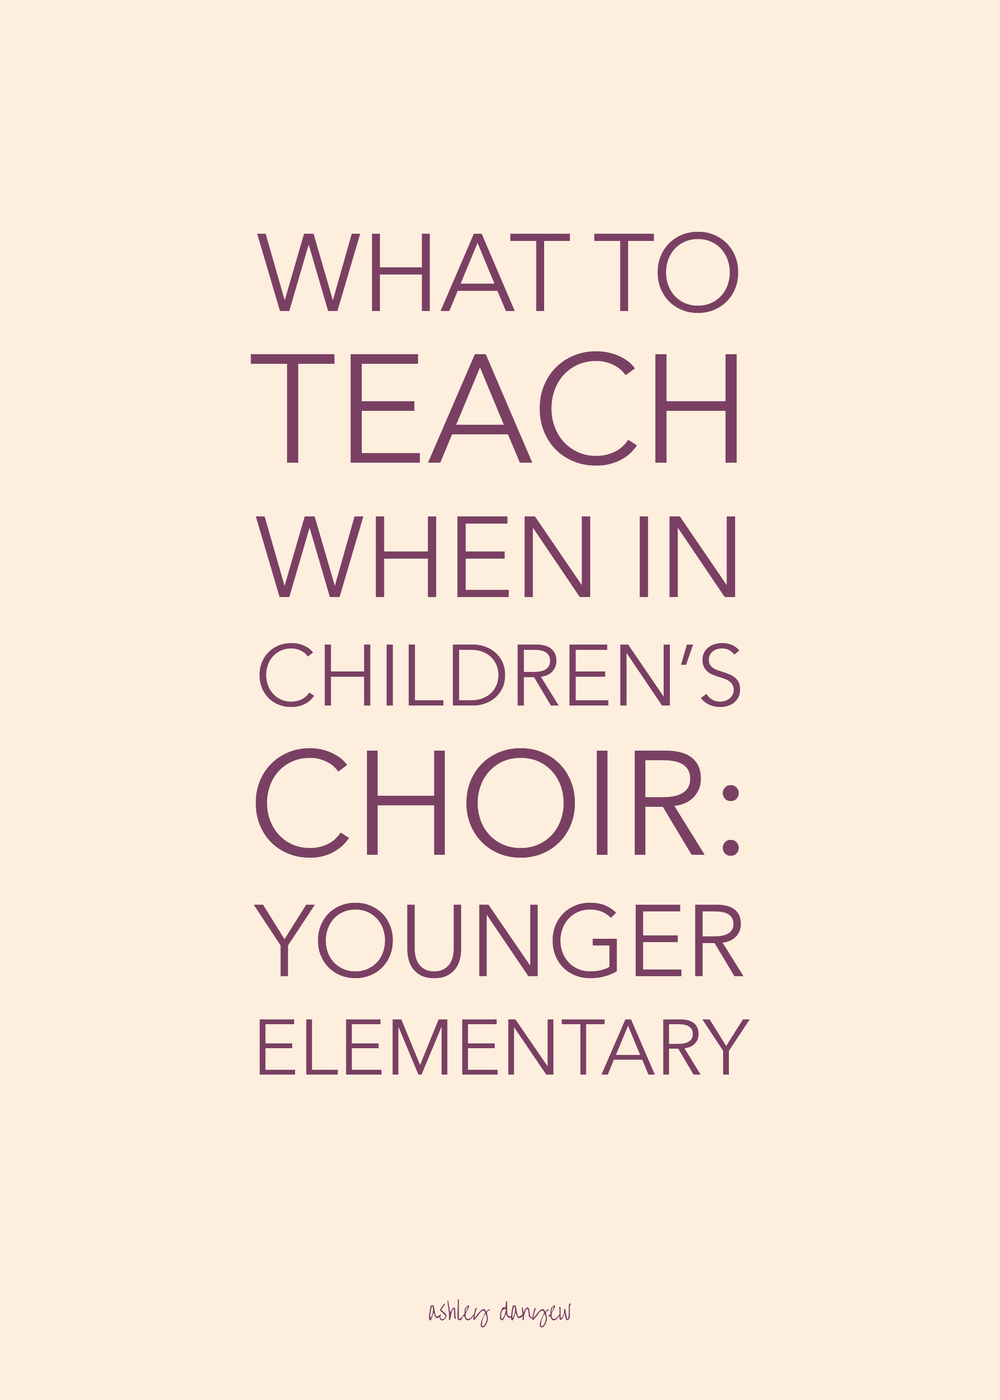 What to Teach When in Children's Choir: Younger Elementary